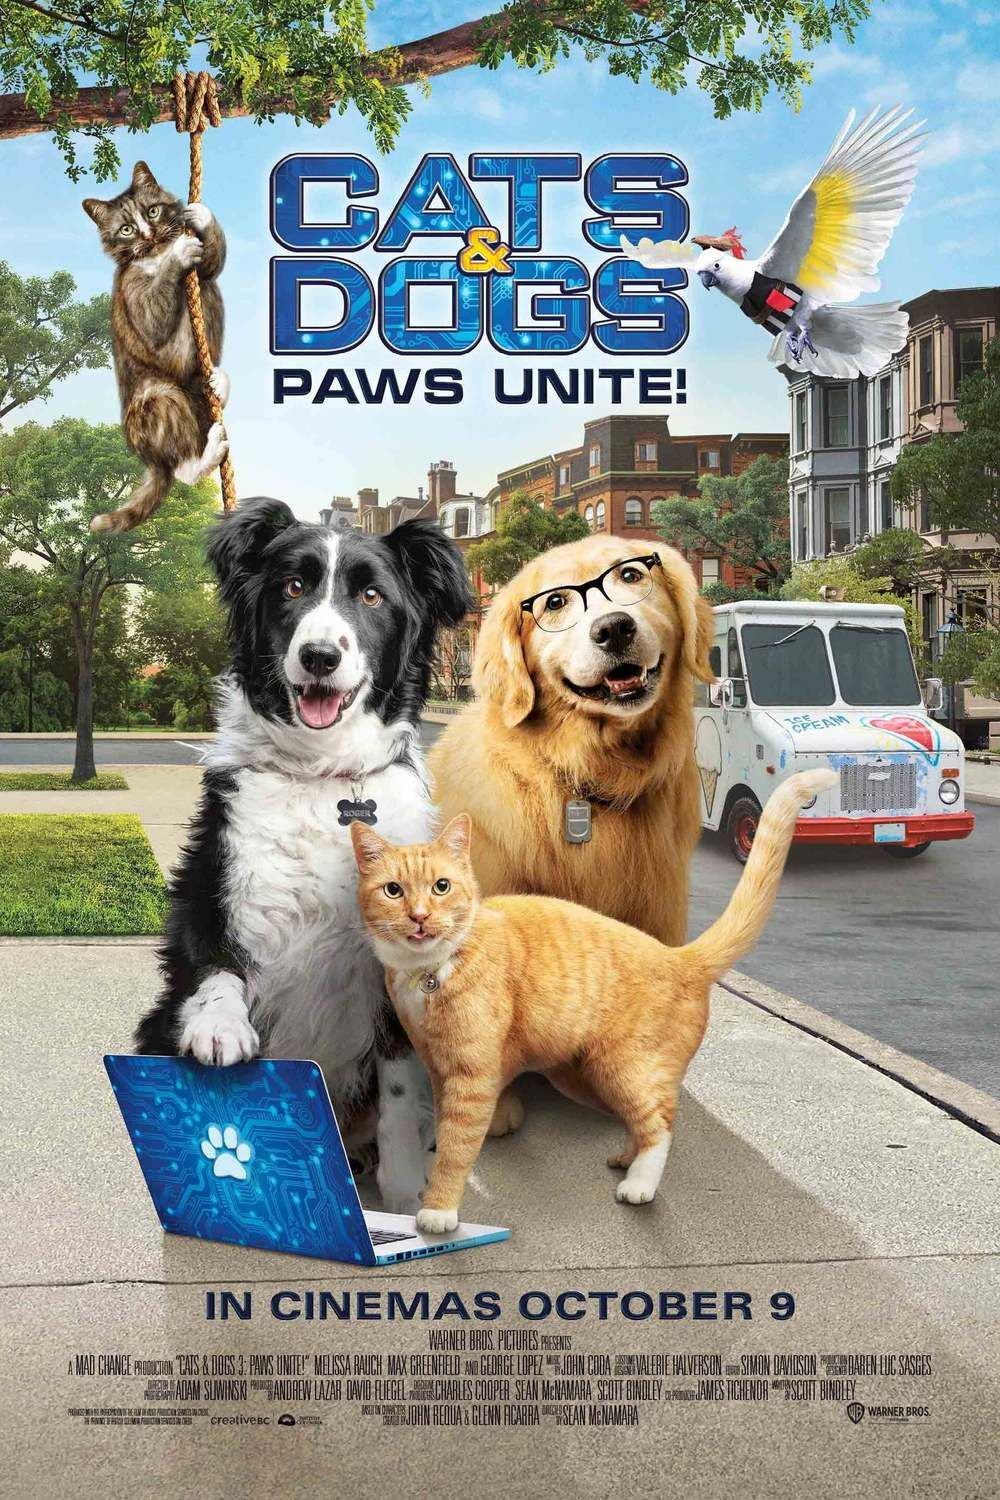 Cats Dogs 3 Paws Unite Dog Cat Dogs Dog Paws